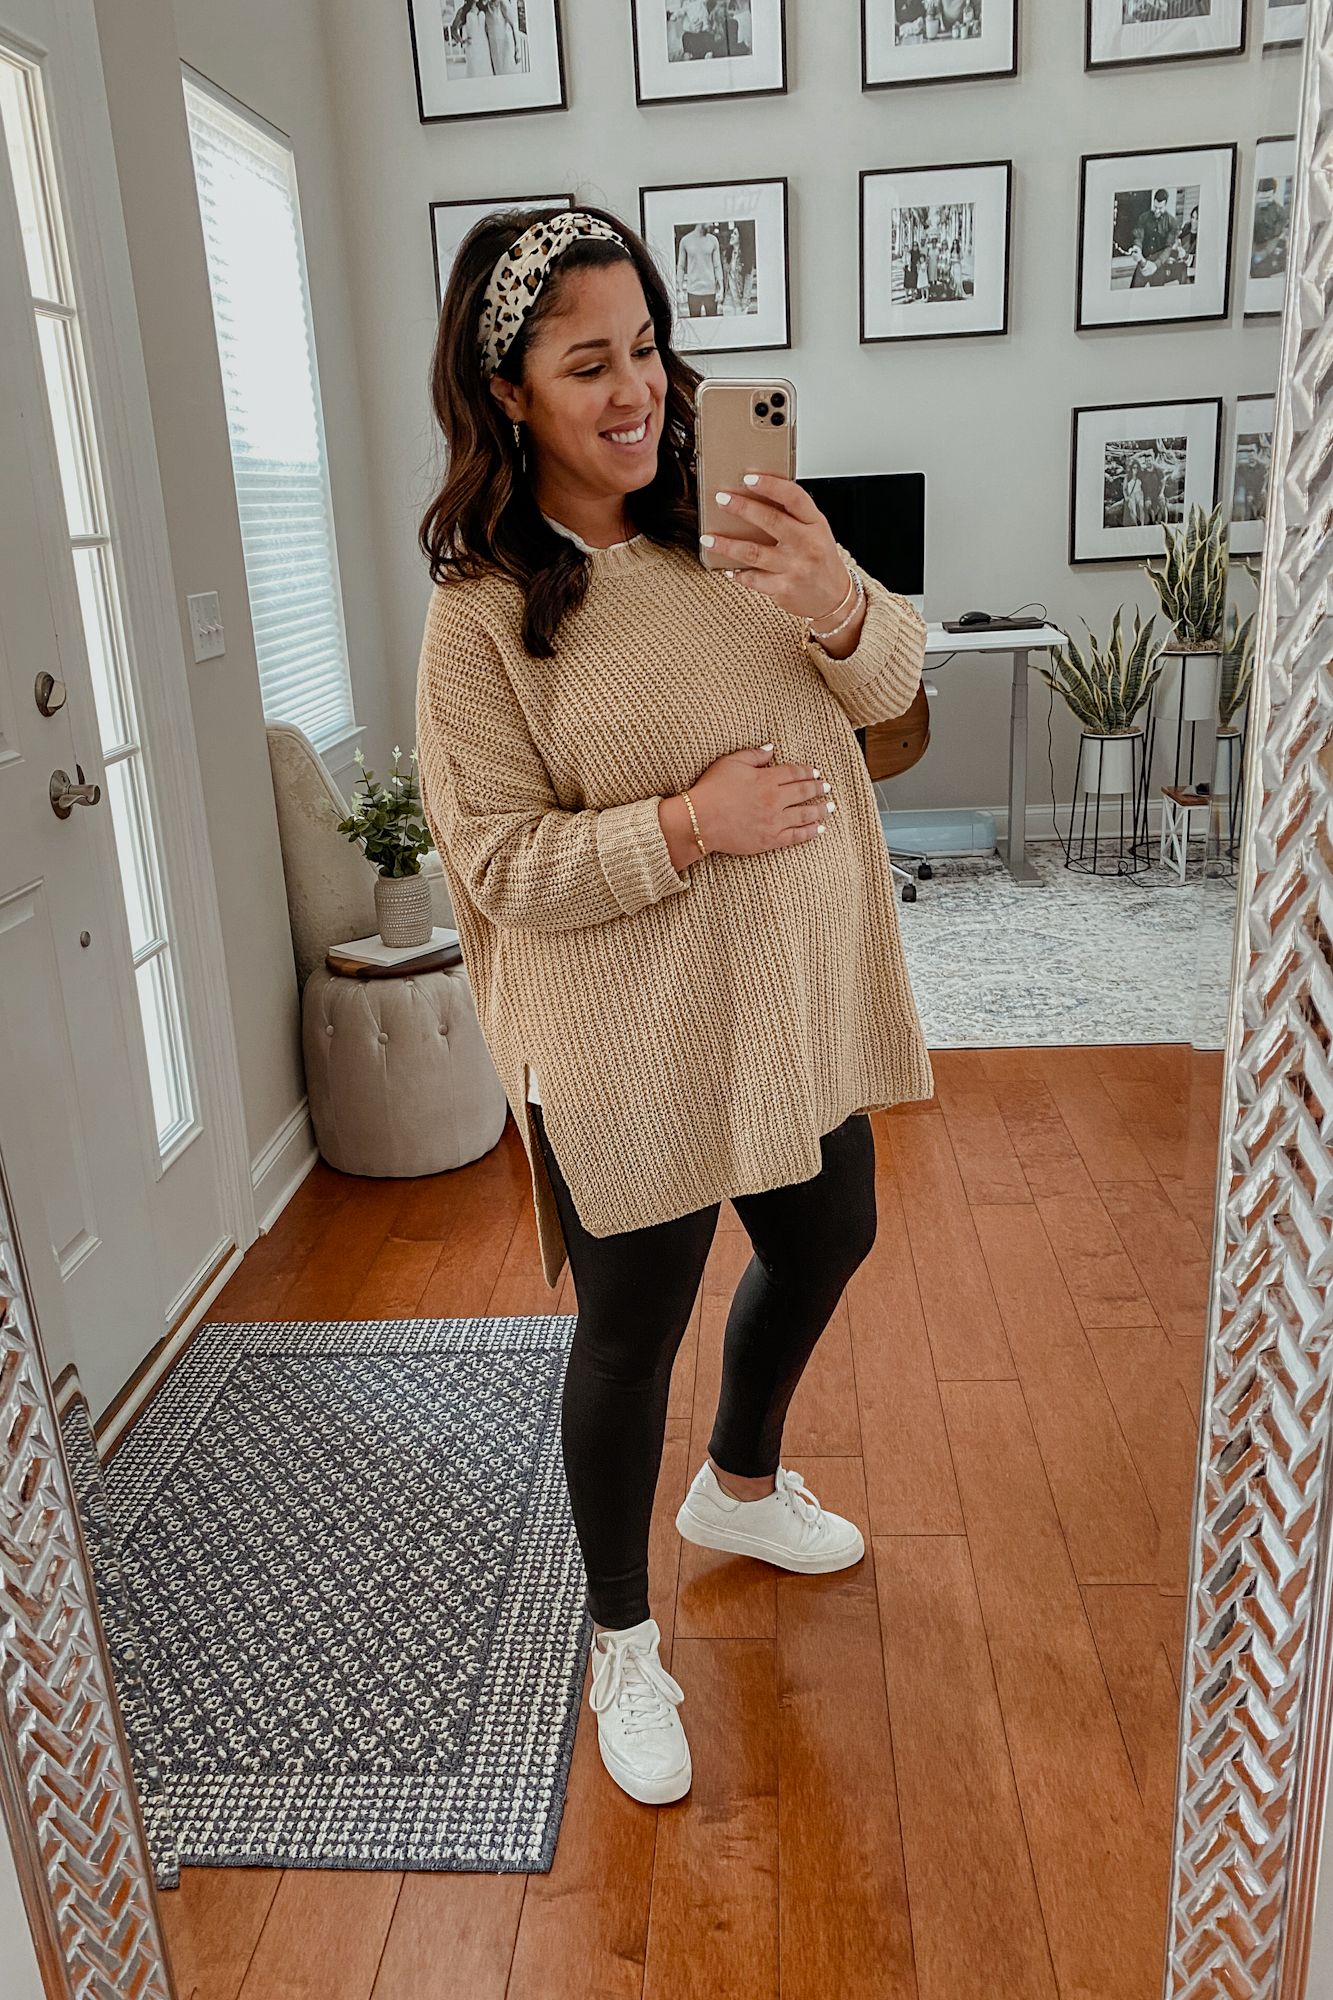 Meach wearing a fall maternity outfit including faux leather maternity leggings and an oversized maternity sweater.